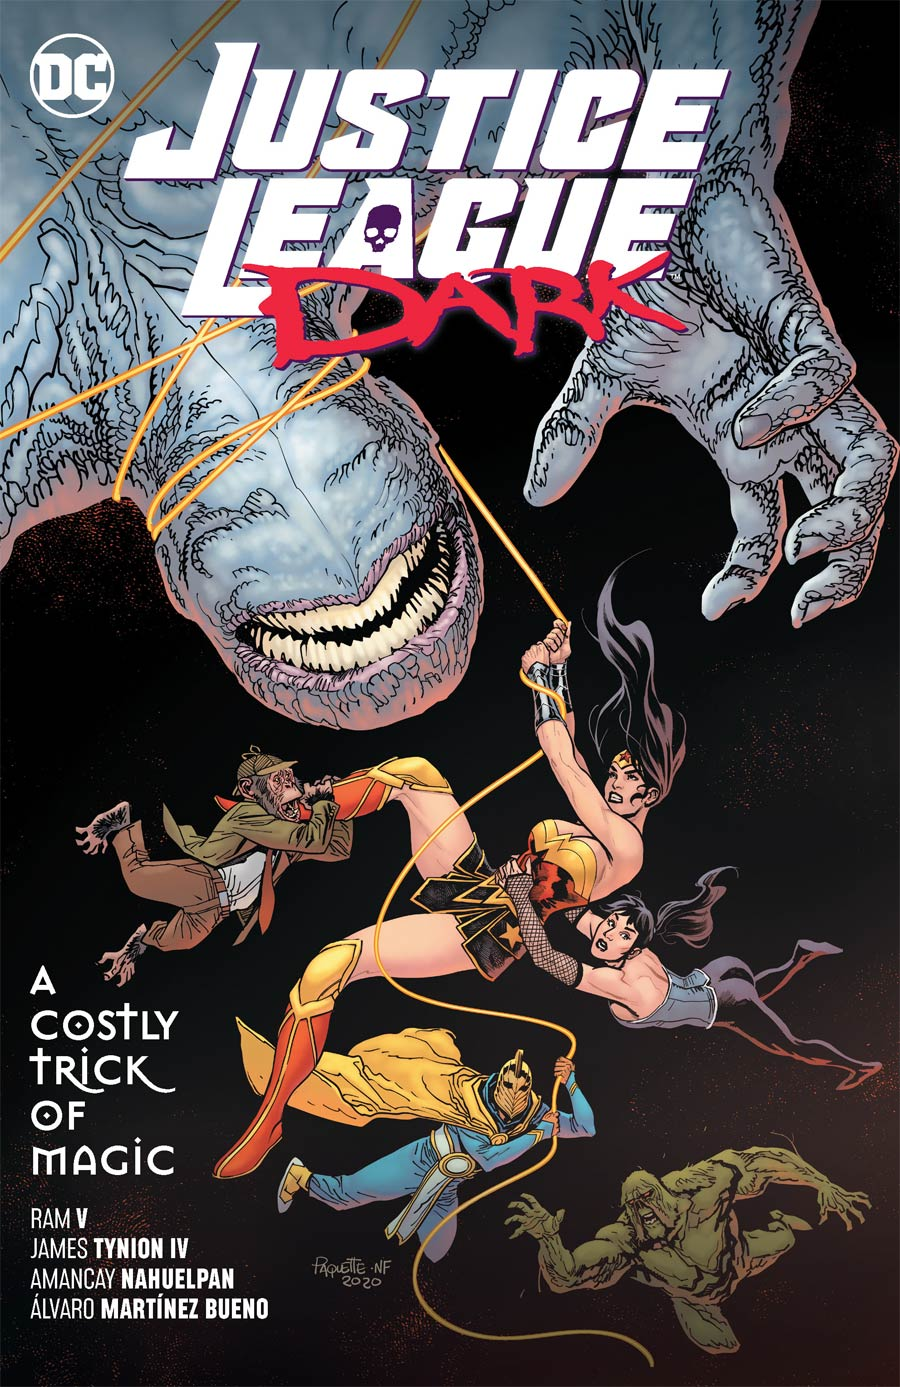 Justice League Dark (2018) Vol 4 A Costly Trick Of Magic TP